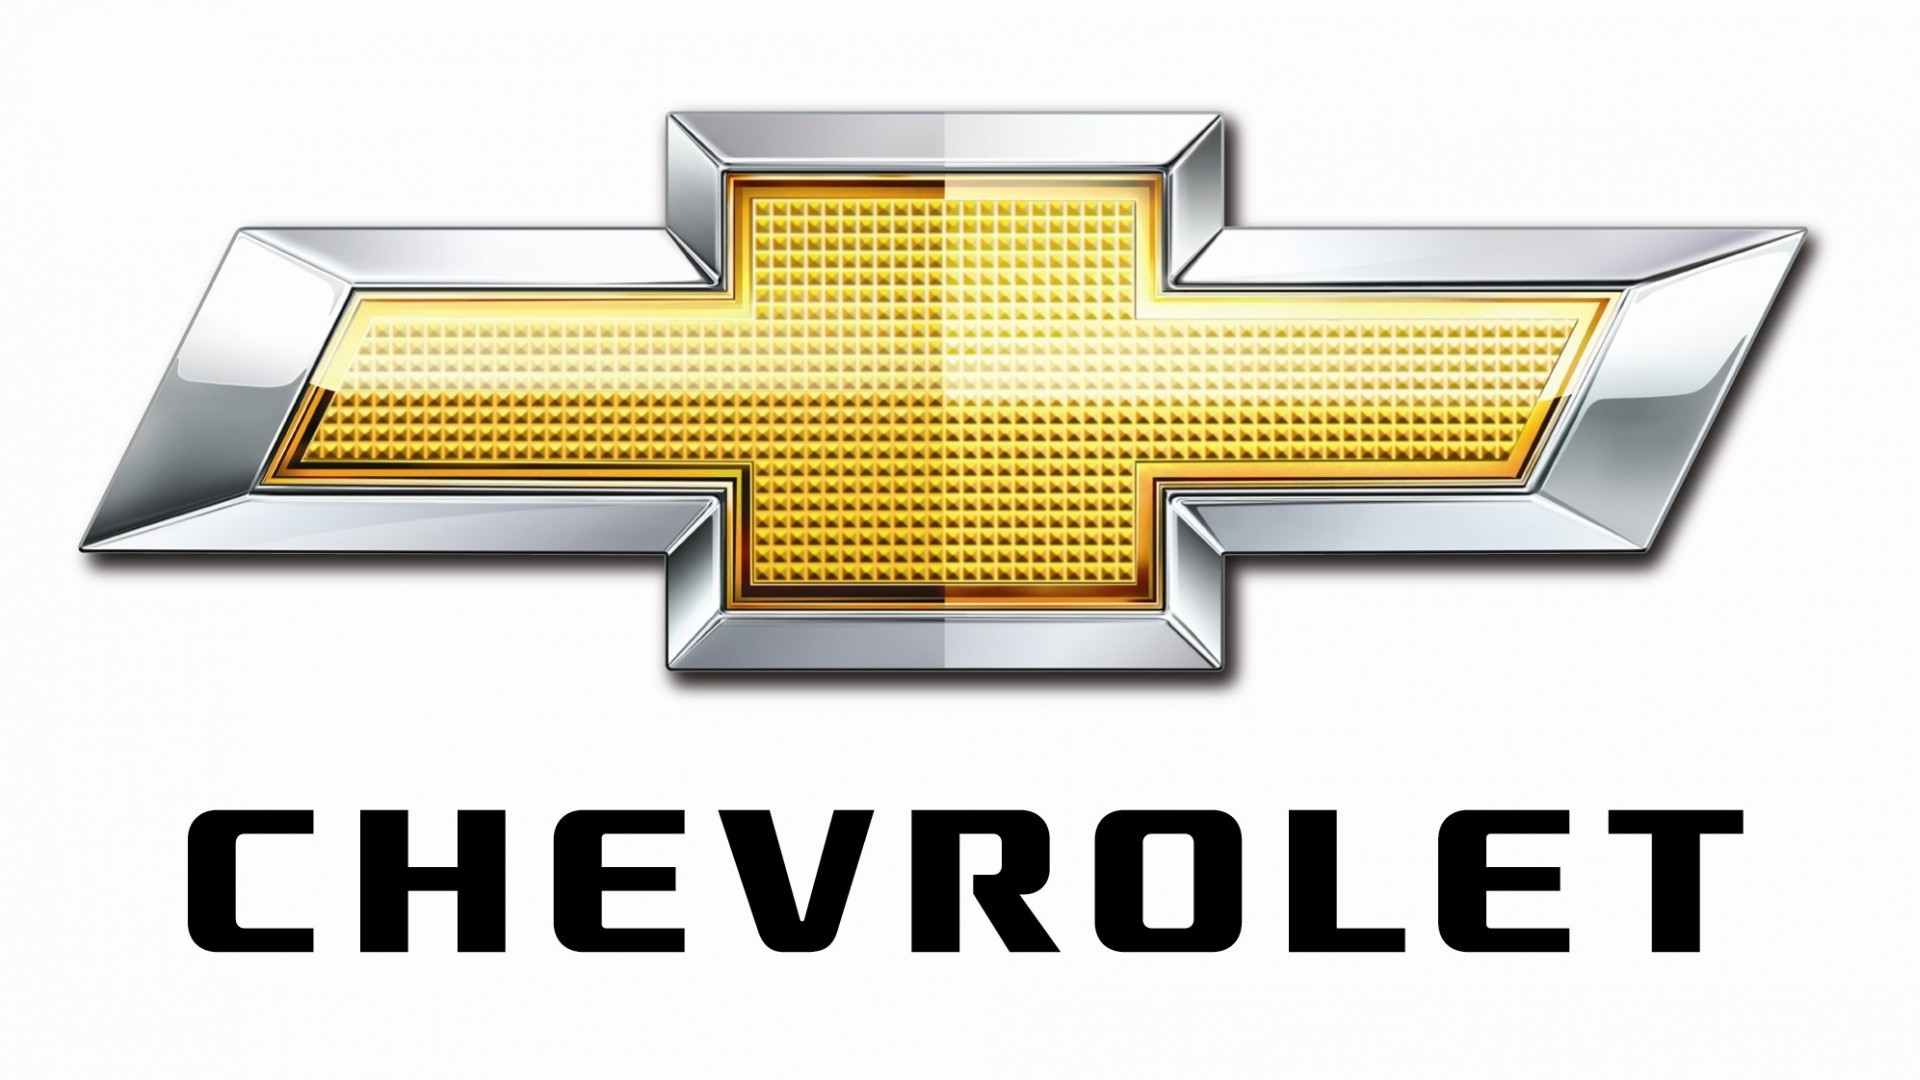 1920x1080 Image for Chevrolet Logo Vector 2015 Car Wallpaper HD